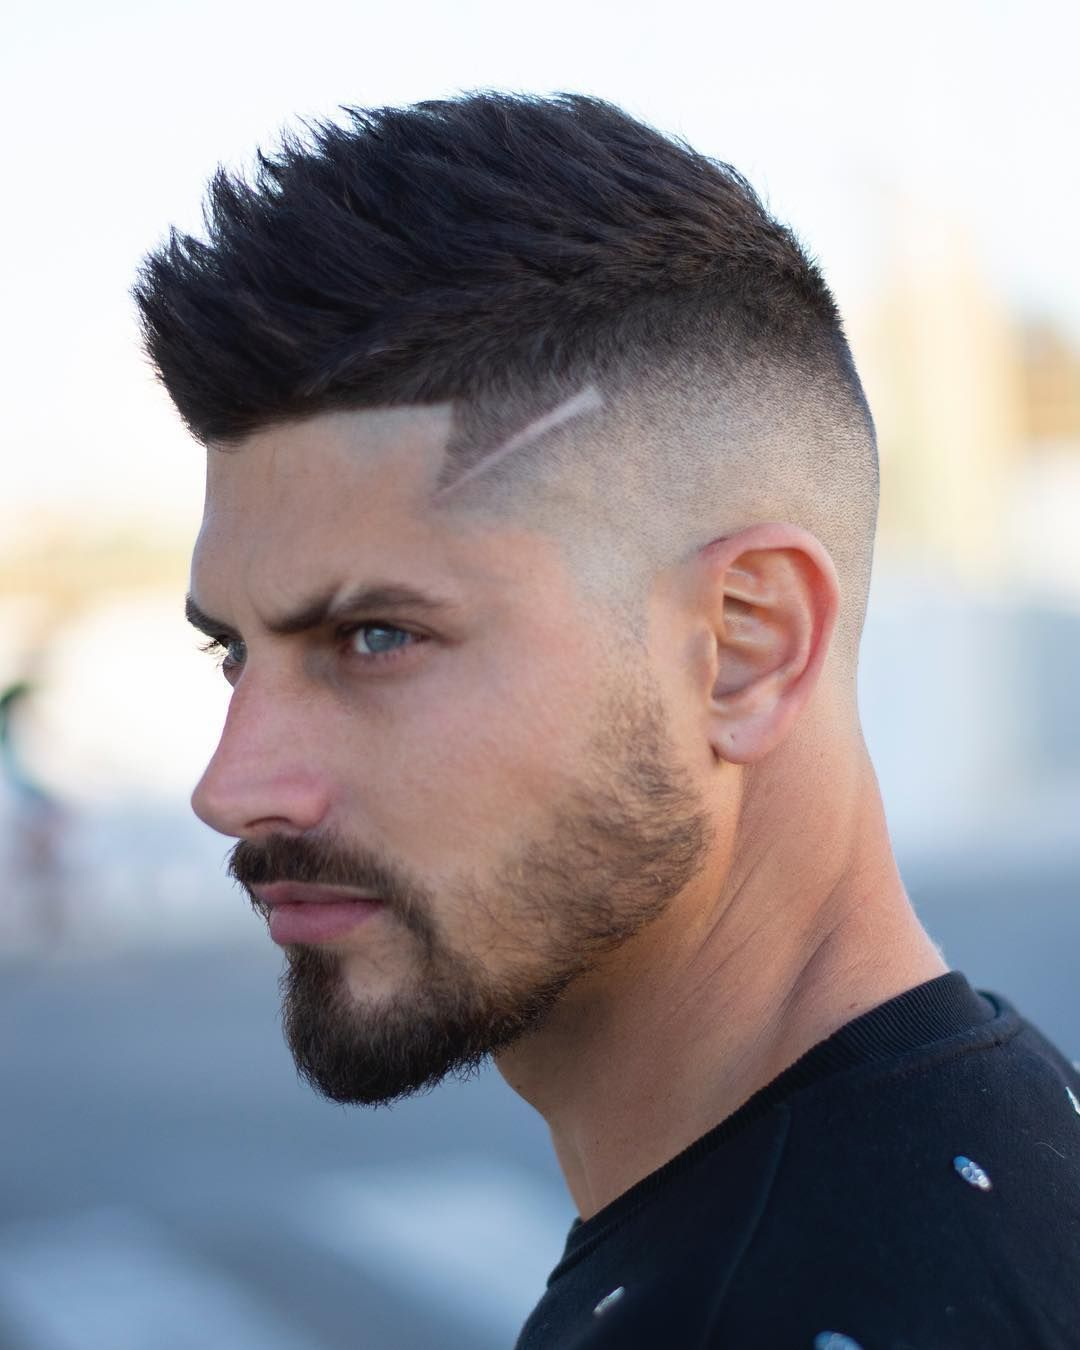 Mens Short Hairstyles 2019 Mens Hairstyles Short Mens Haircuts Short Cool Hairstyles For Men